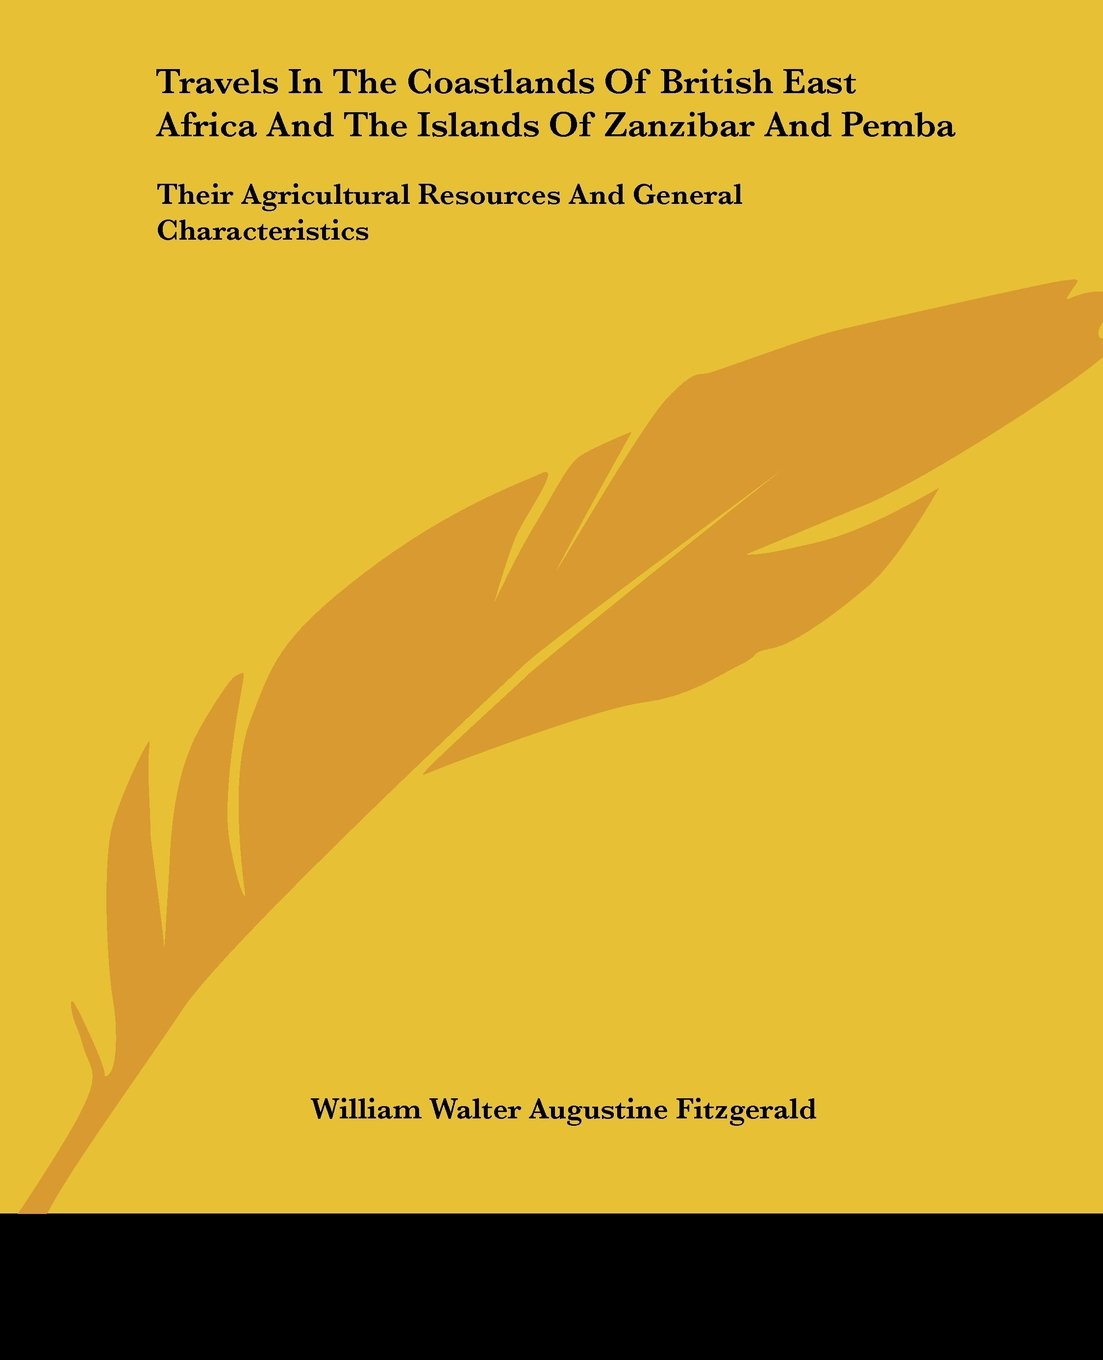 Travels In The Coastlands Of British East Africa And The Islands Of Zanzibar And Pemba: Their Agricultural Resources And General Characteristics